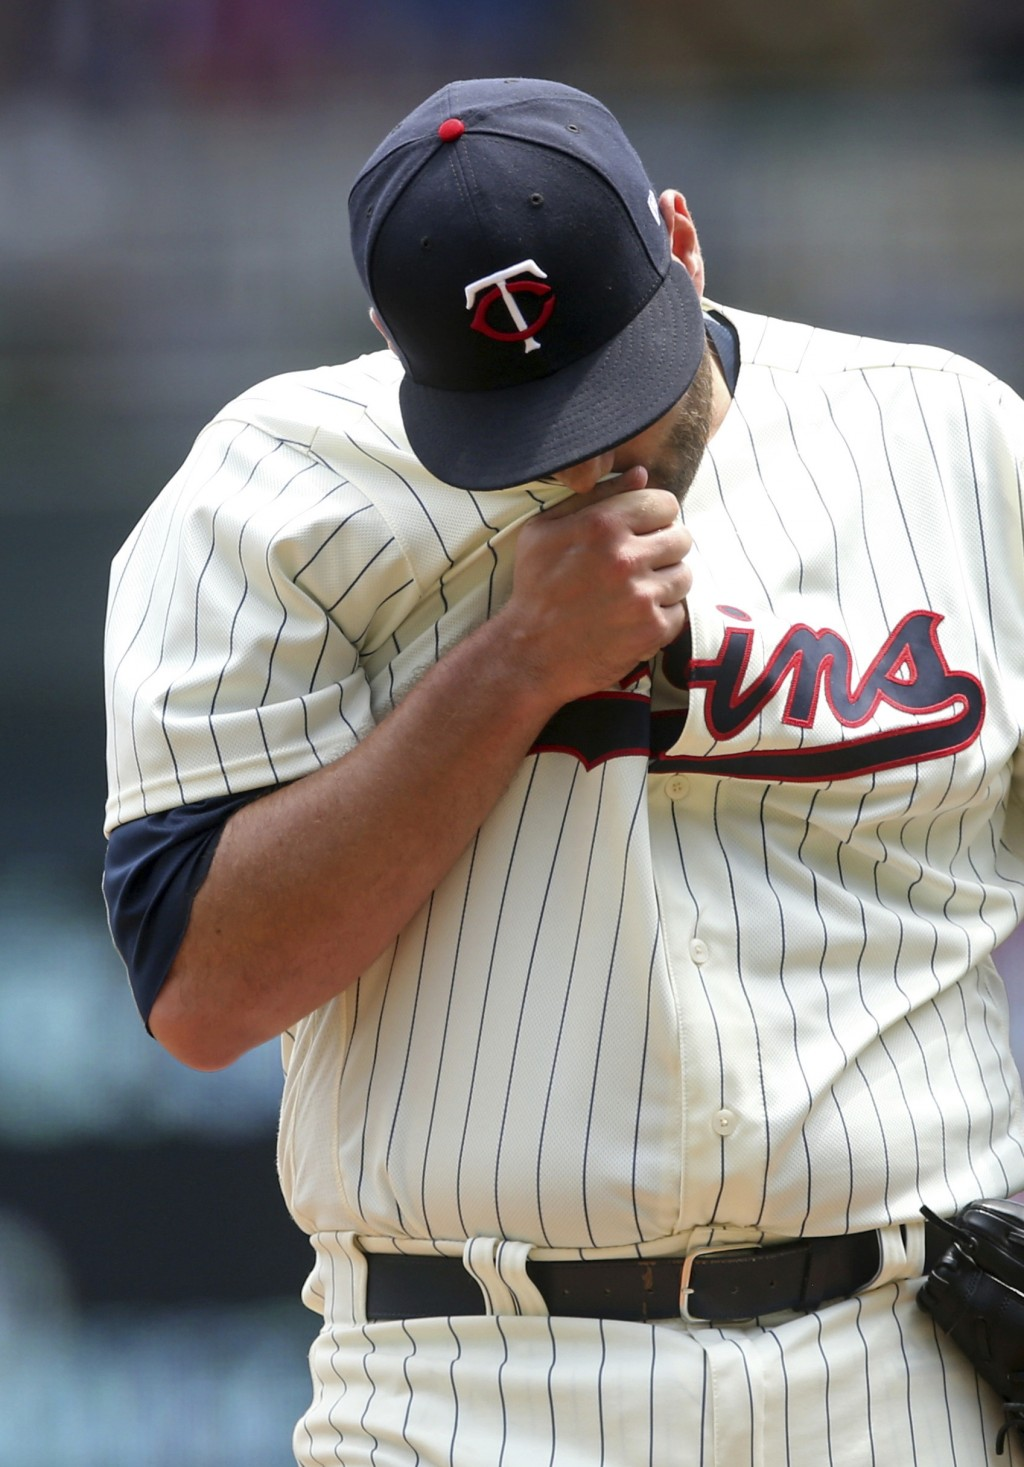 Minnesota Twins pitcher Lance Lynn wipes his face after giving up a solo home run to Kansas City Royals' Mike Moustakas in the third inning of a baseb